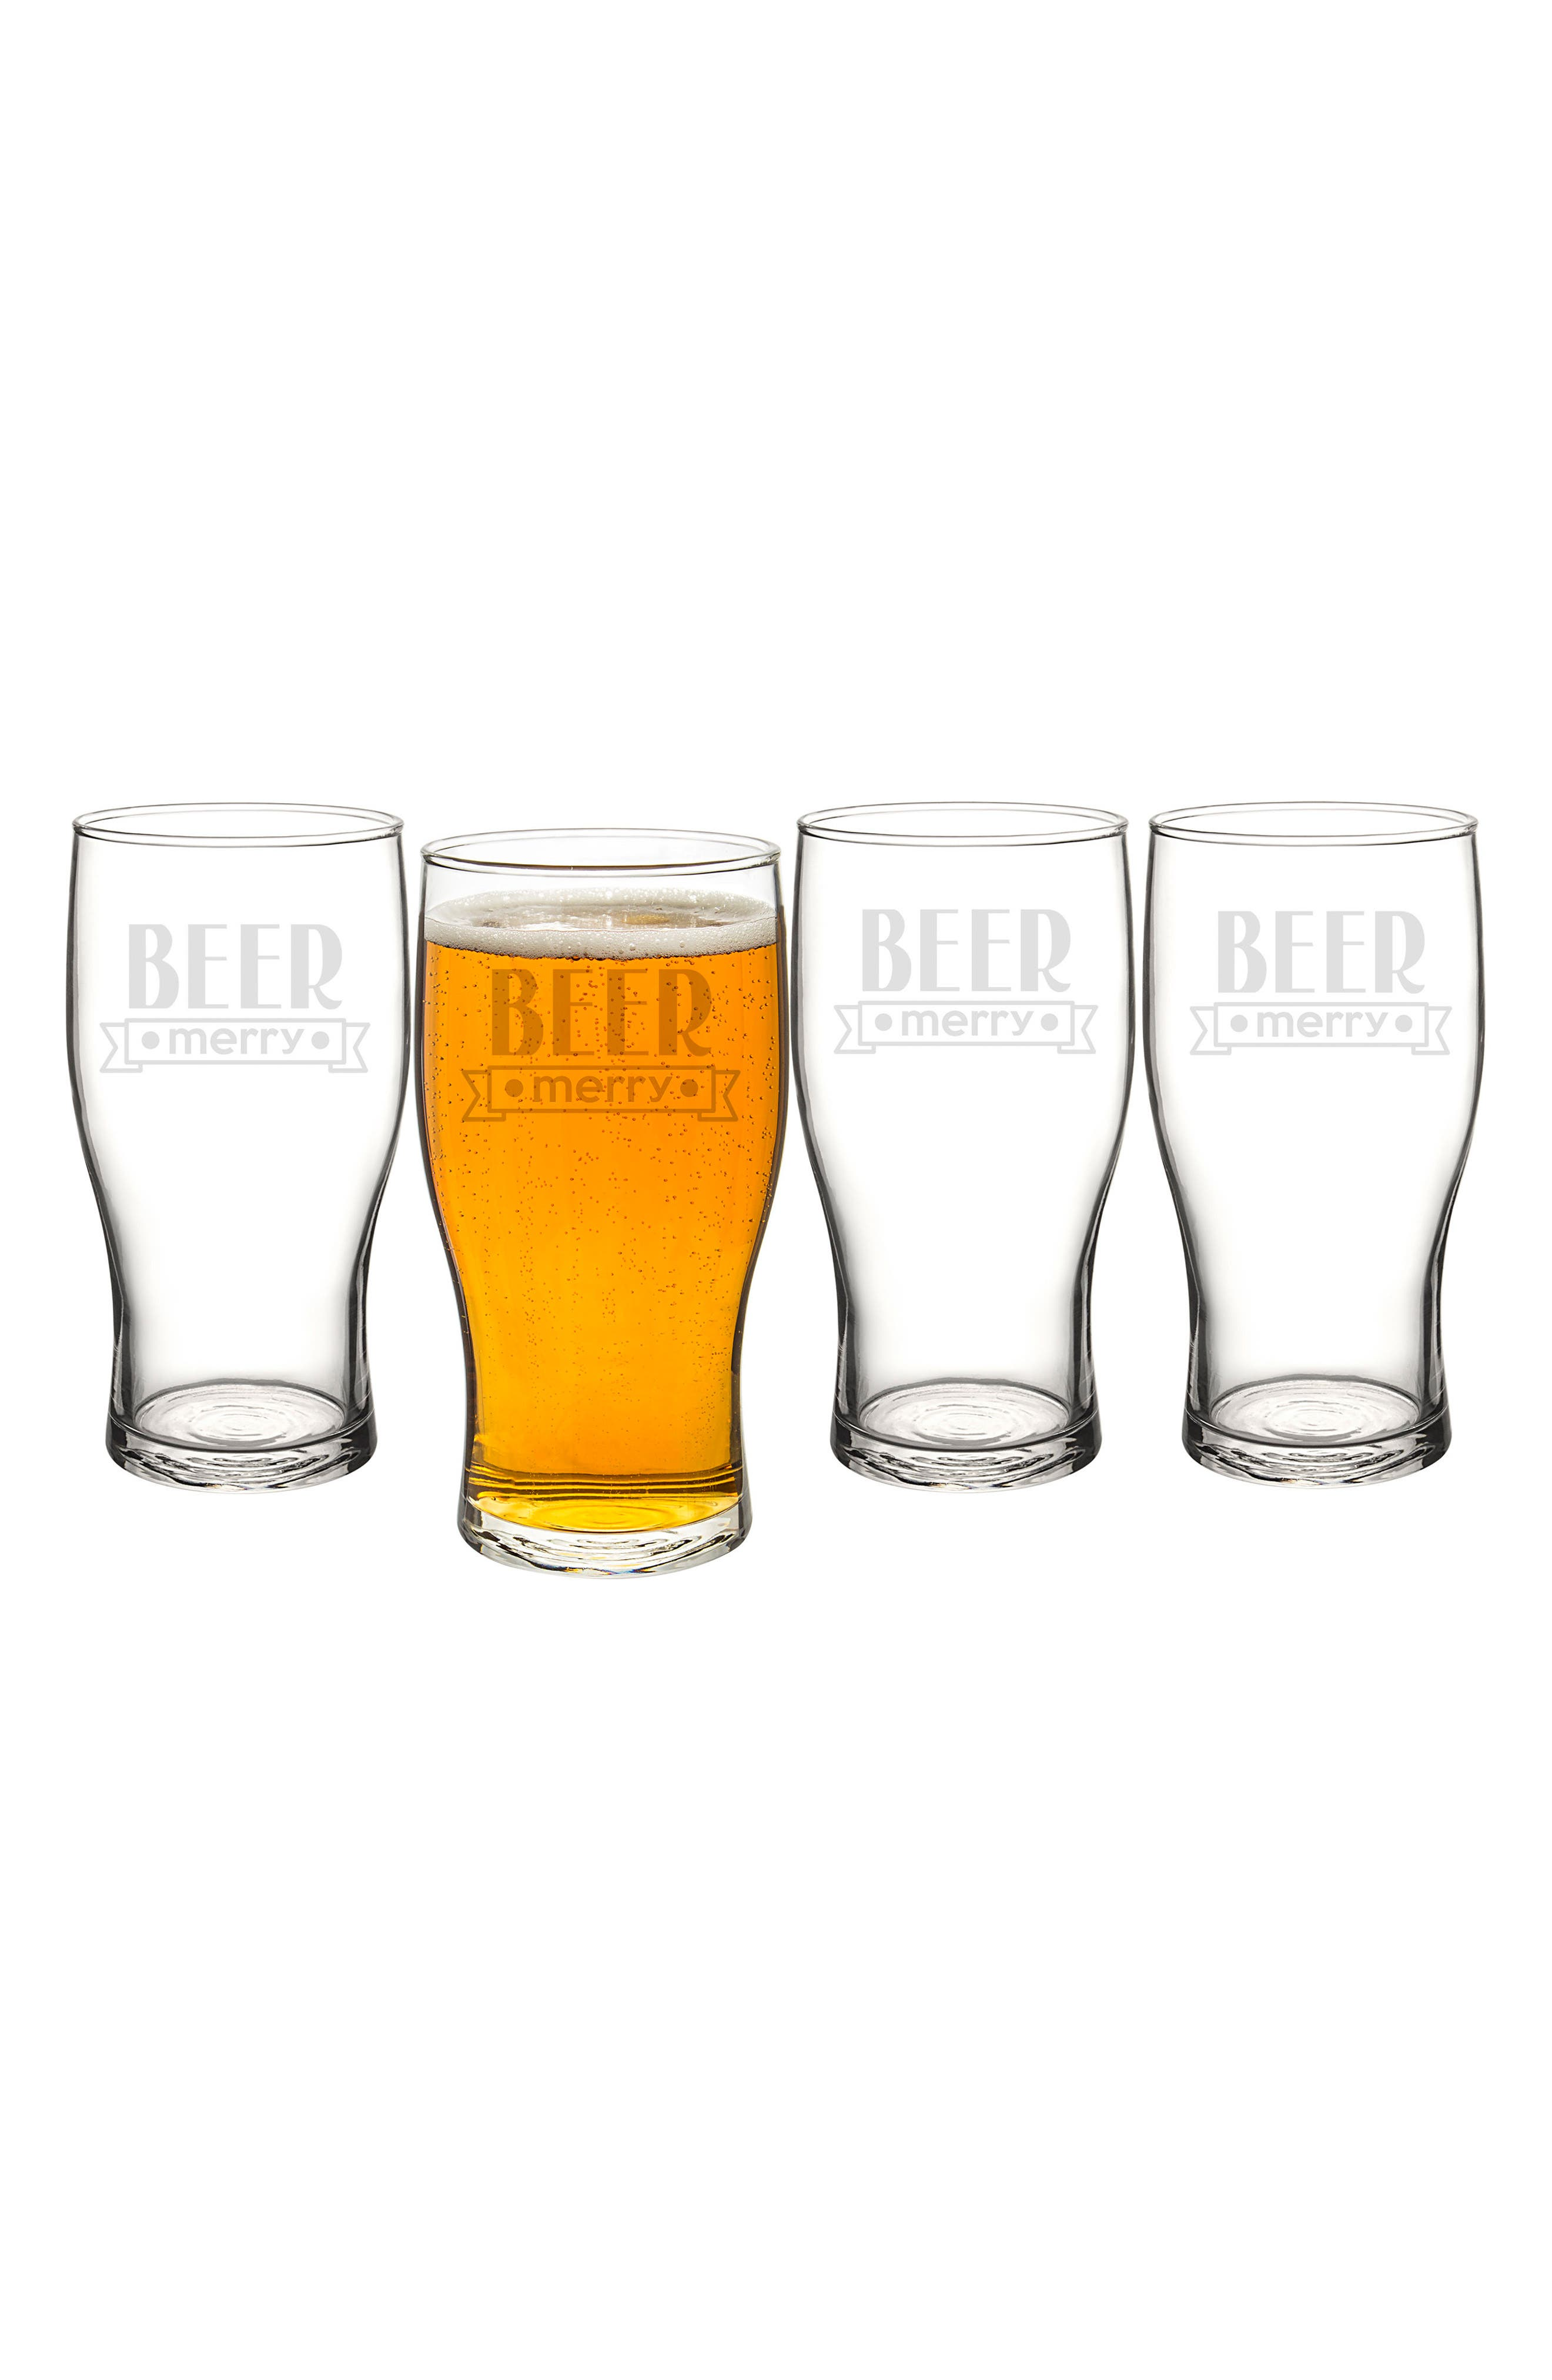 Main Image - Cathy's Concepts Beer Merry Set of 4 Pilsner Glasses